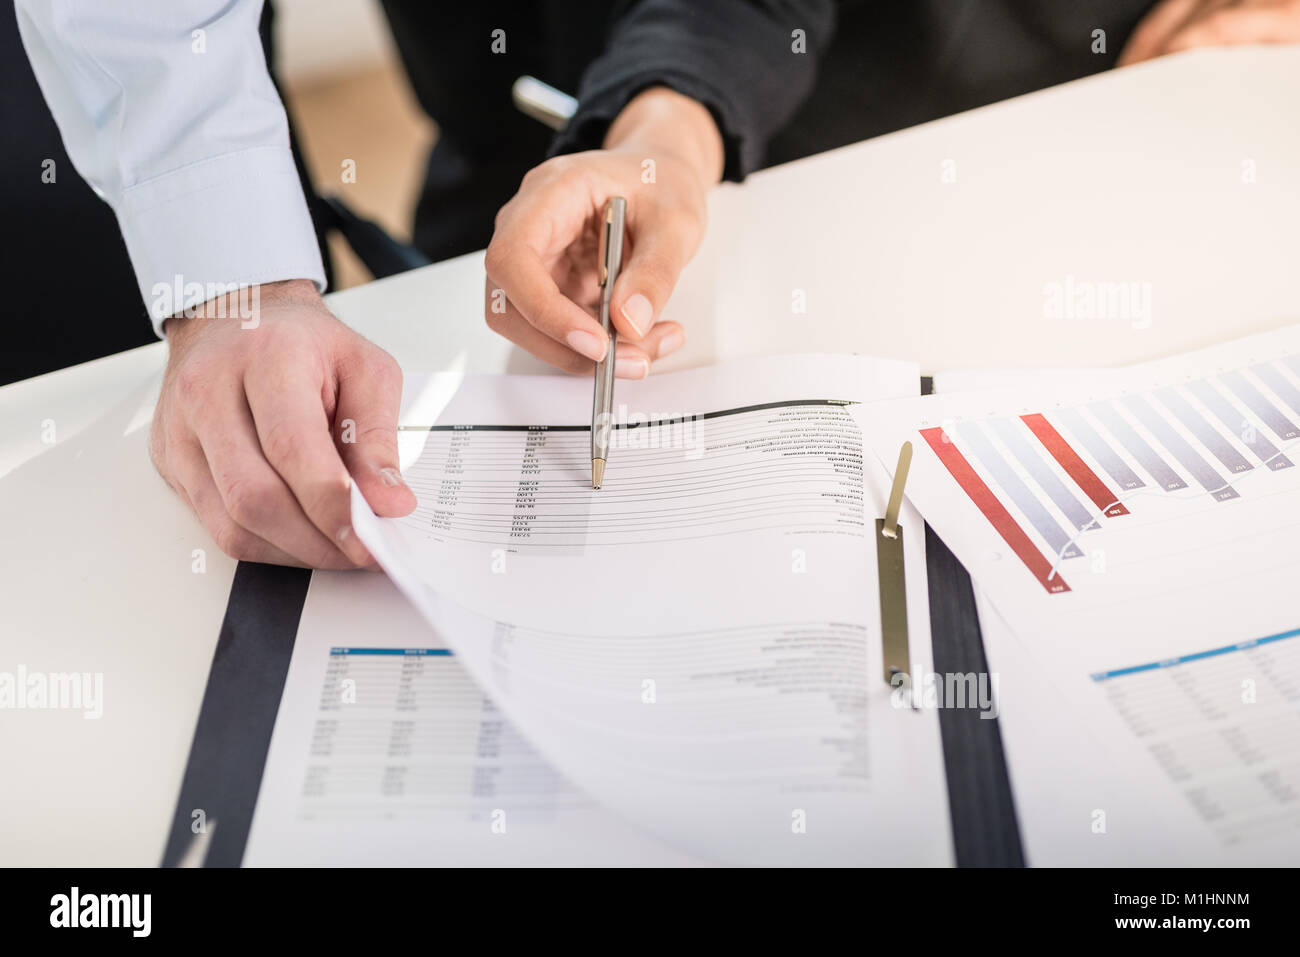 Business man and woman analyzing financial reports - Stock Image